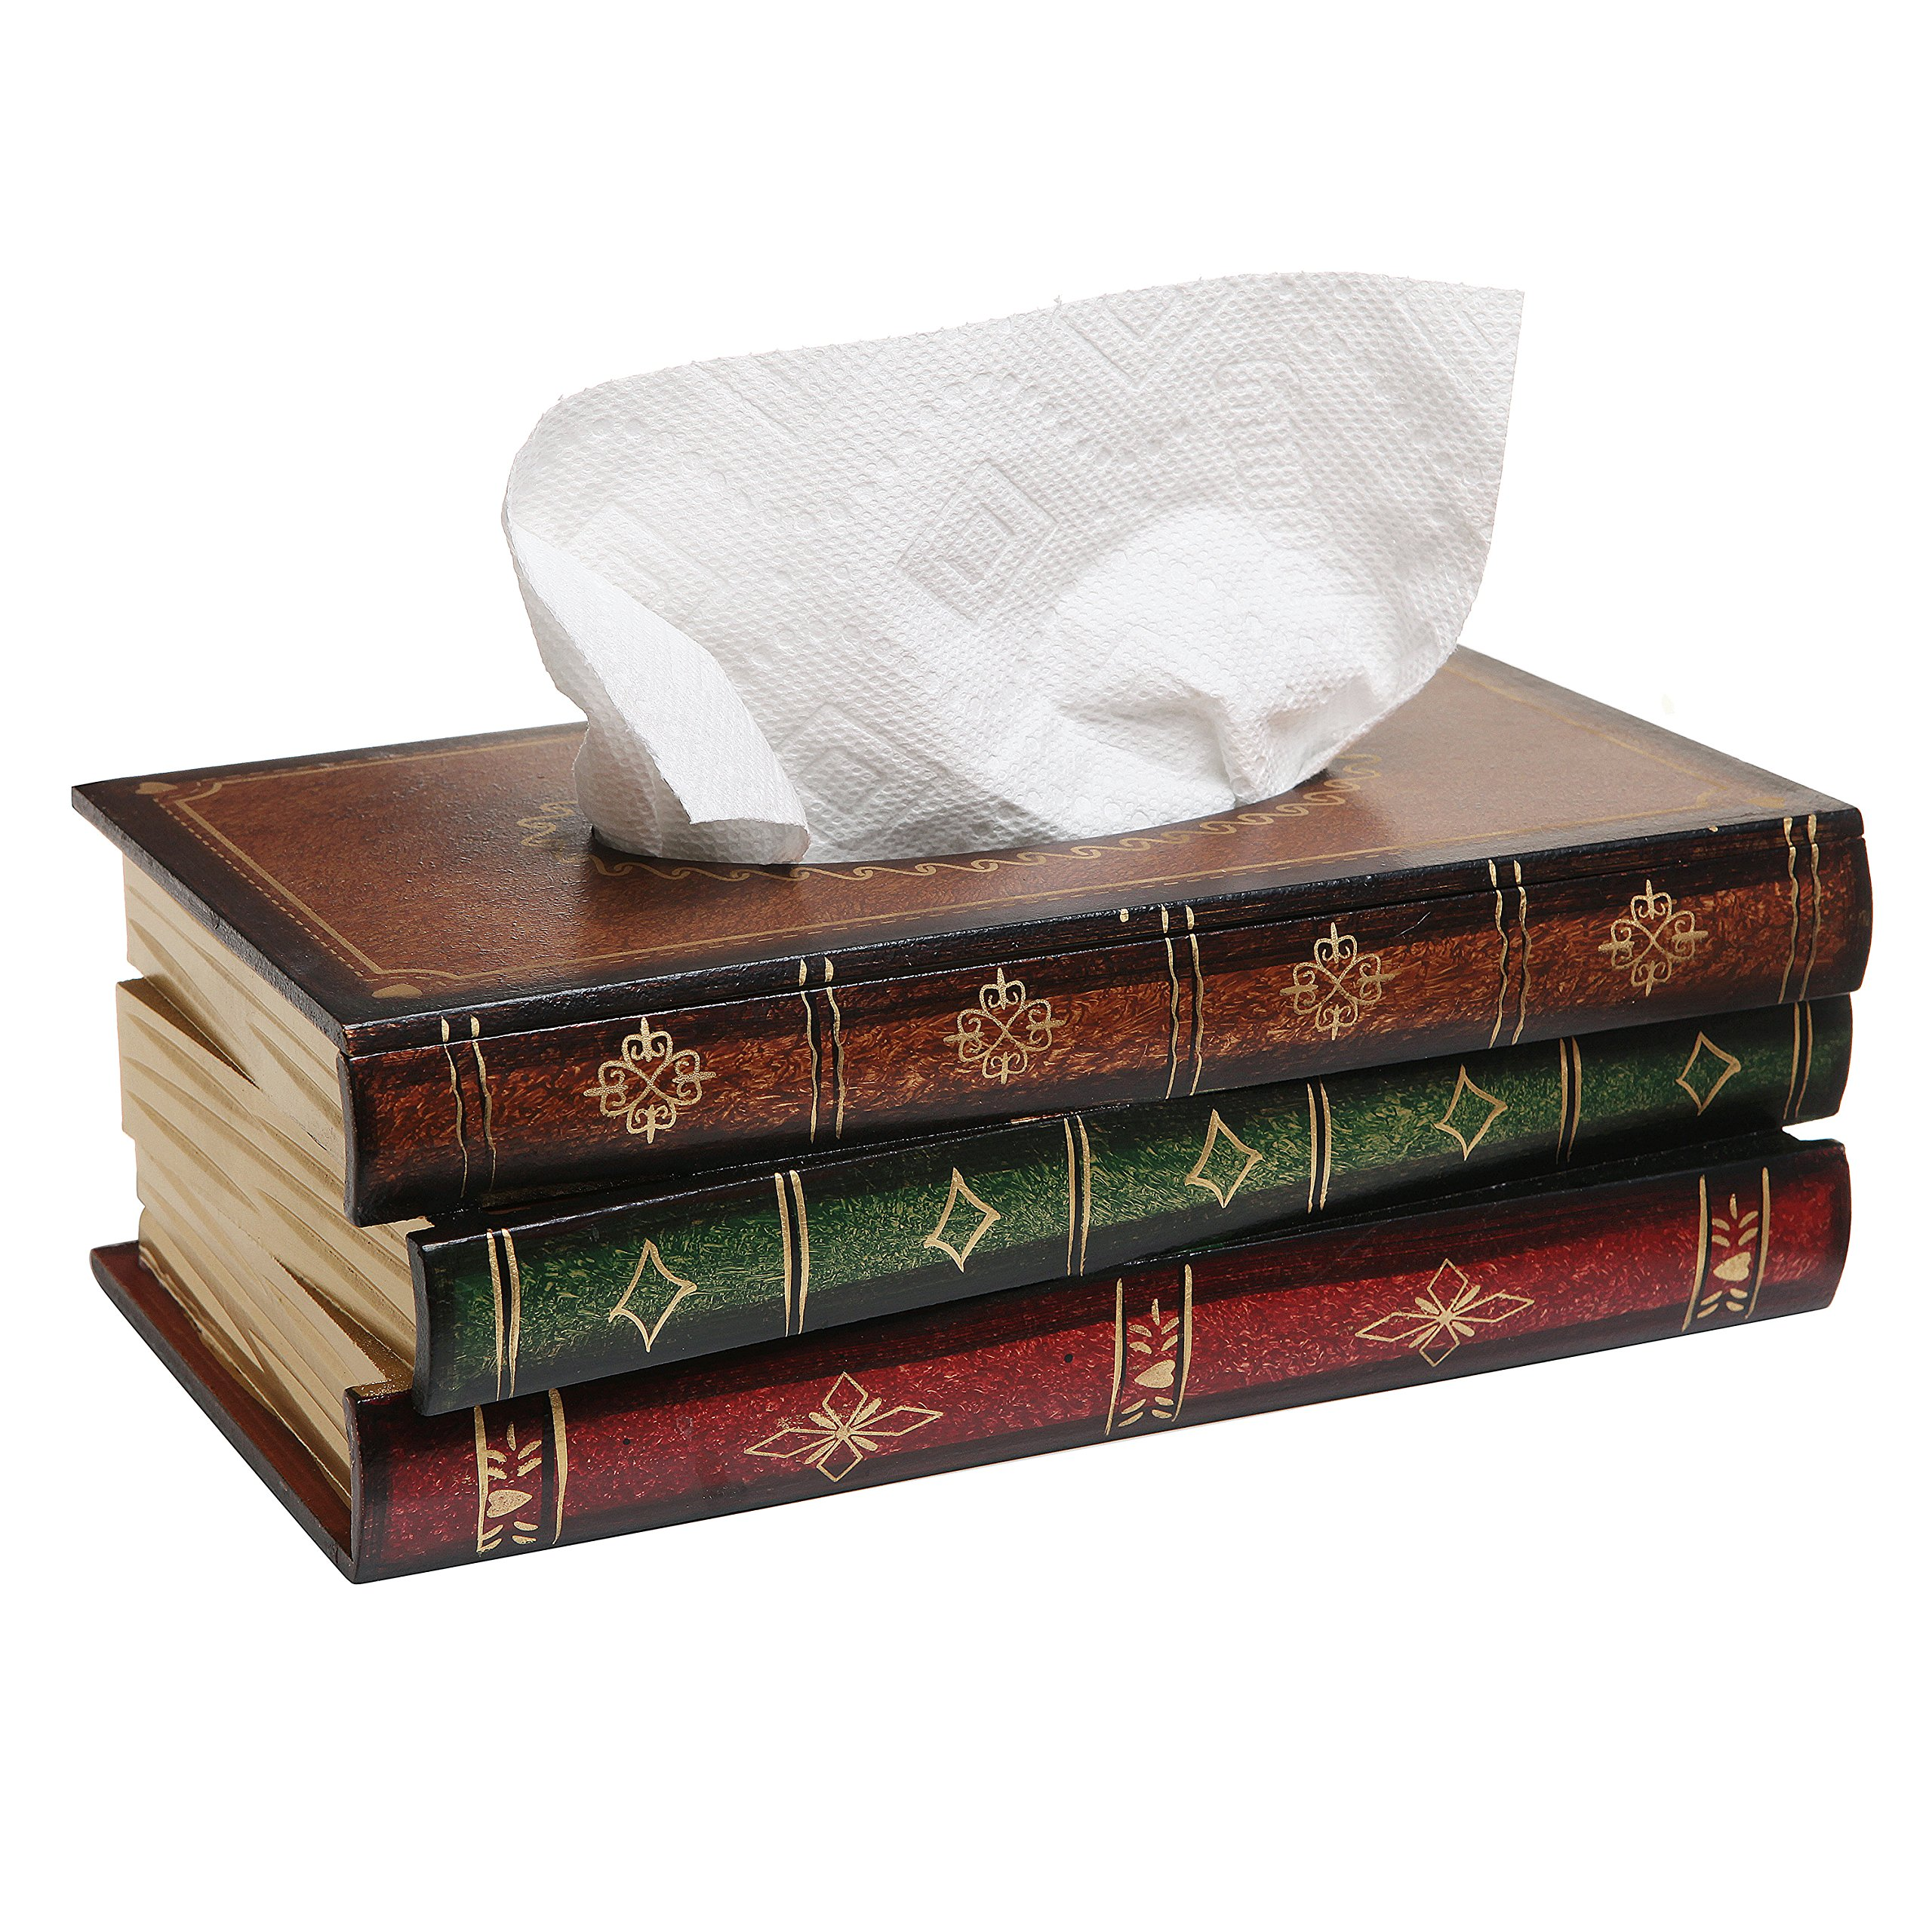 MyGift Antique Book Design Wood Bathroom Facial Tissue Dispenser Box Cover/Novelty Napkin Holder by MyGift